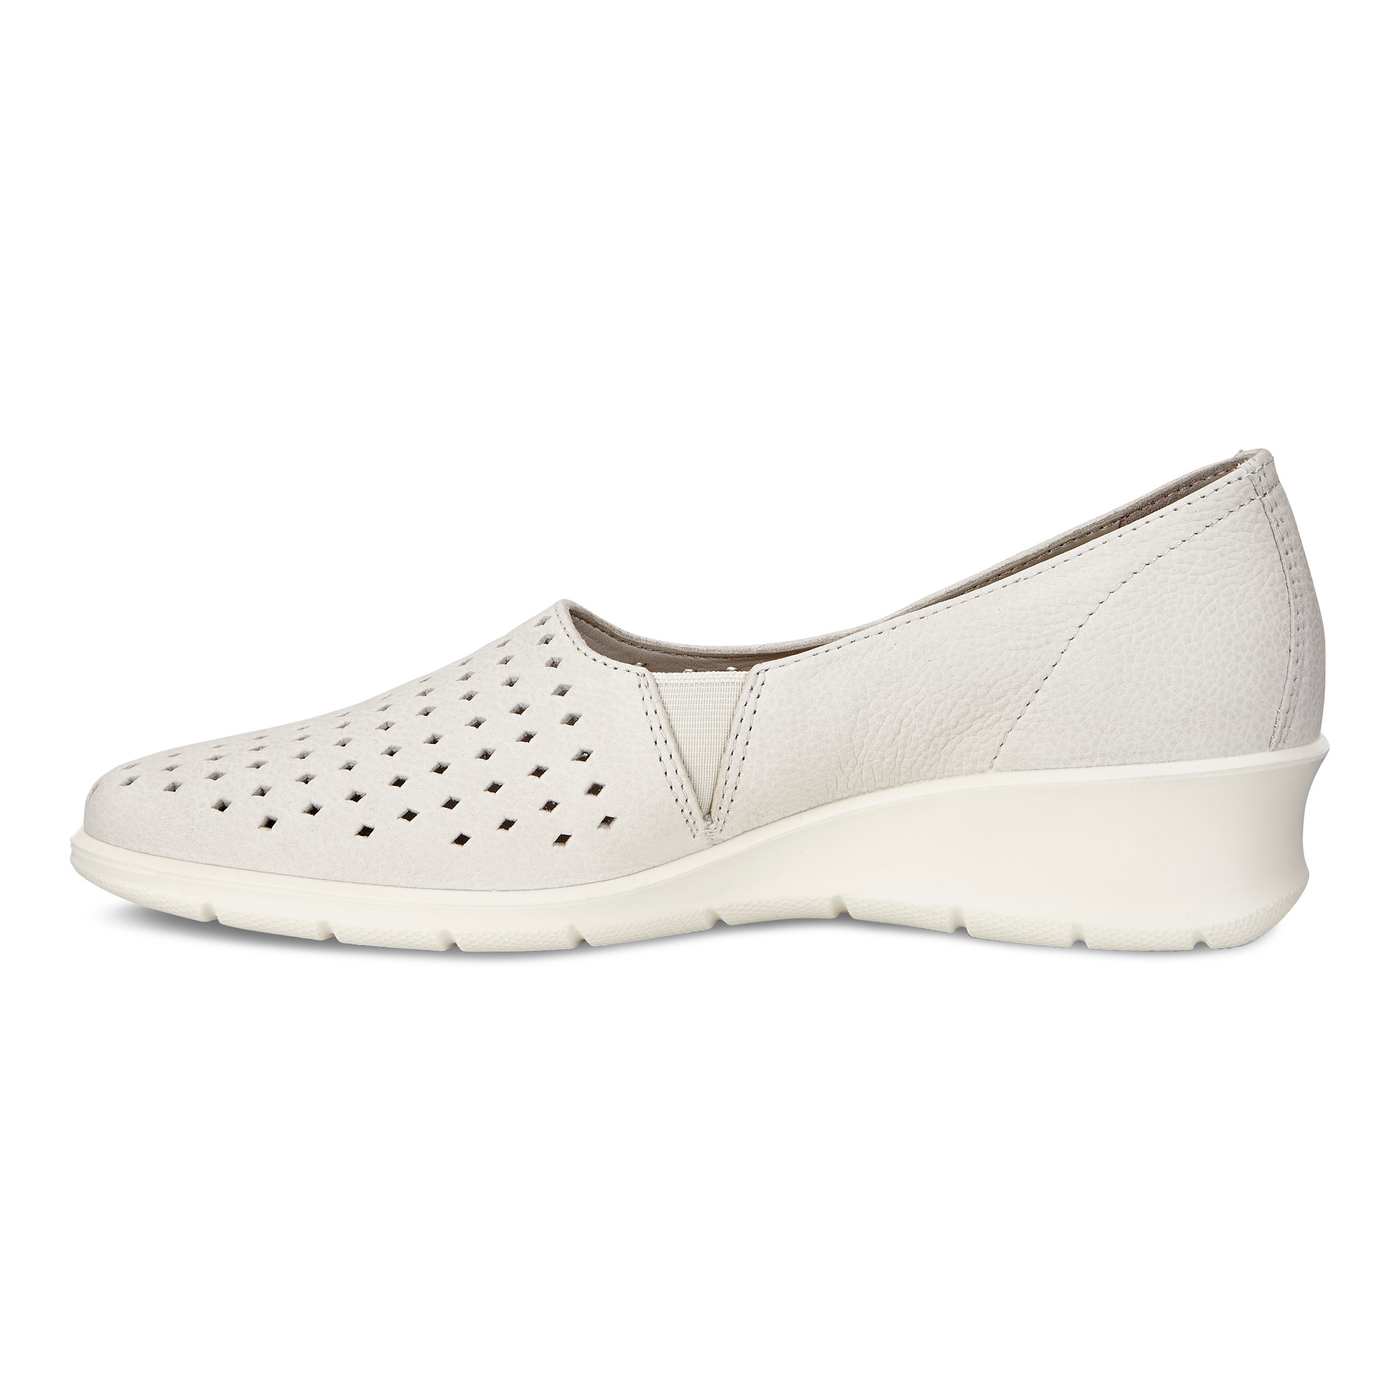 ECCO FELICIA Summer Slip On